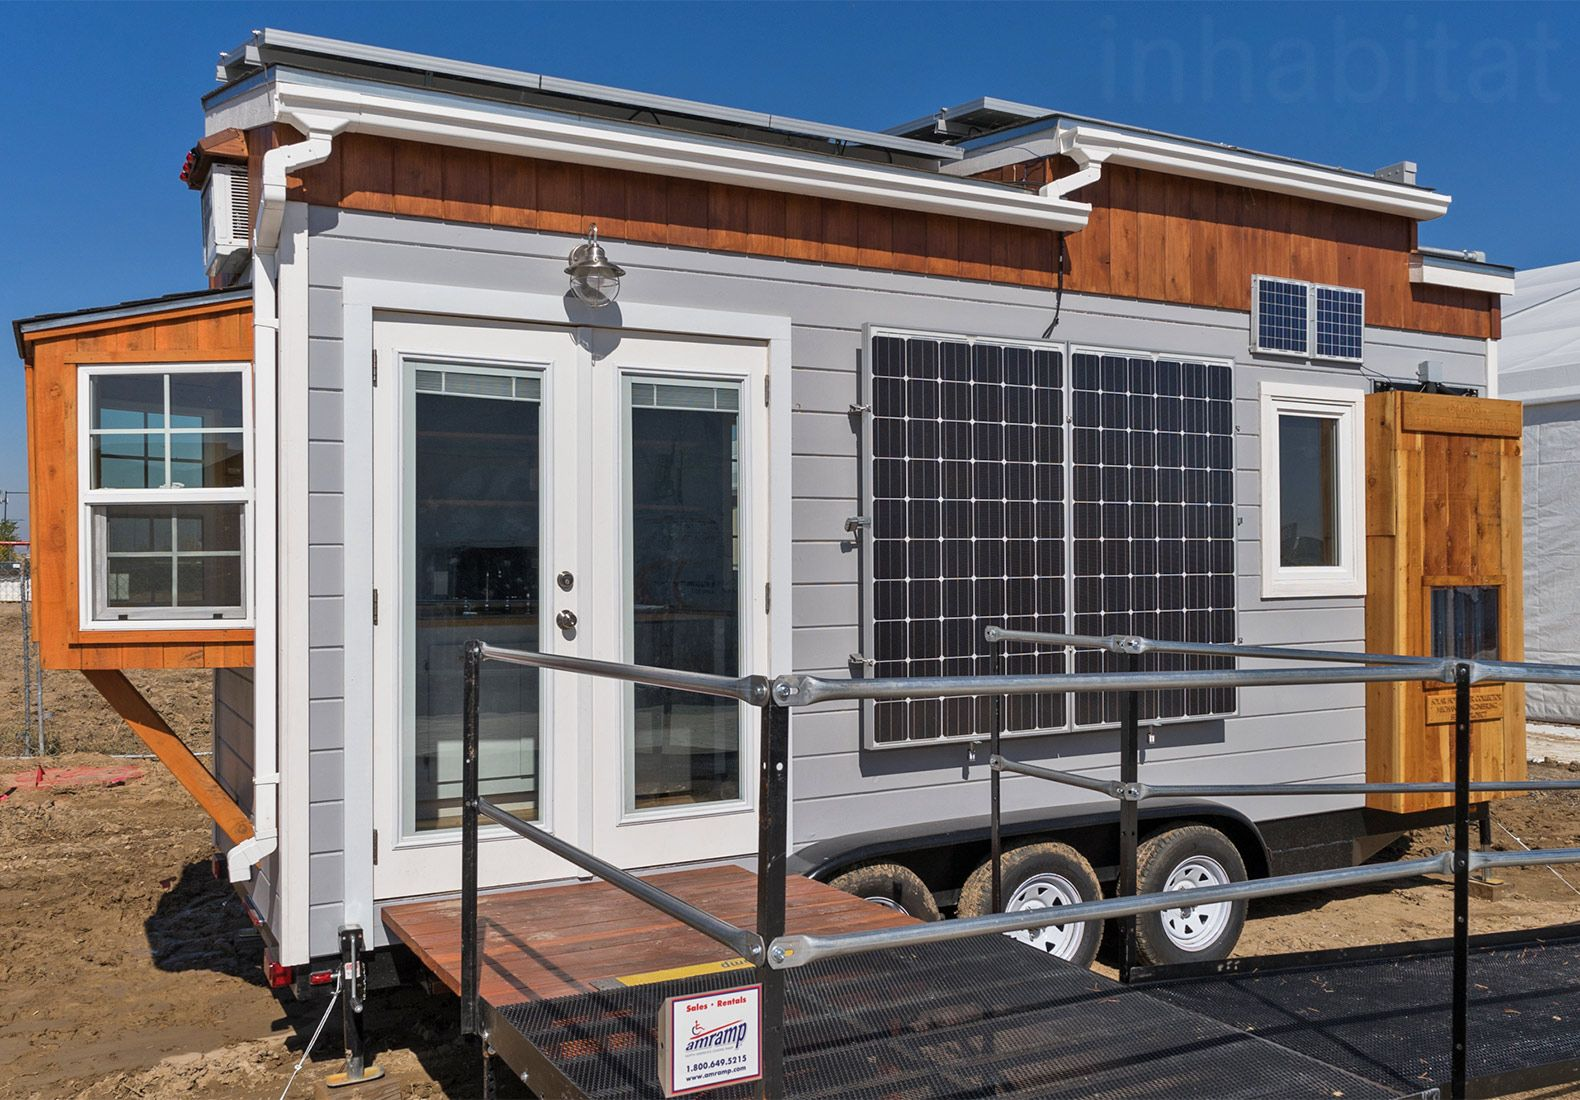 Student Built Solar Powered Tiny Home Represents New Vision For The American Dream Tiny House Trailer House On Wheels Tiny House Big Living